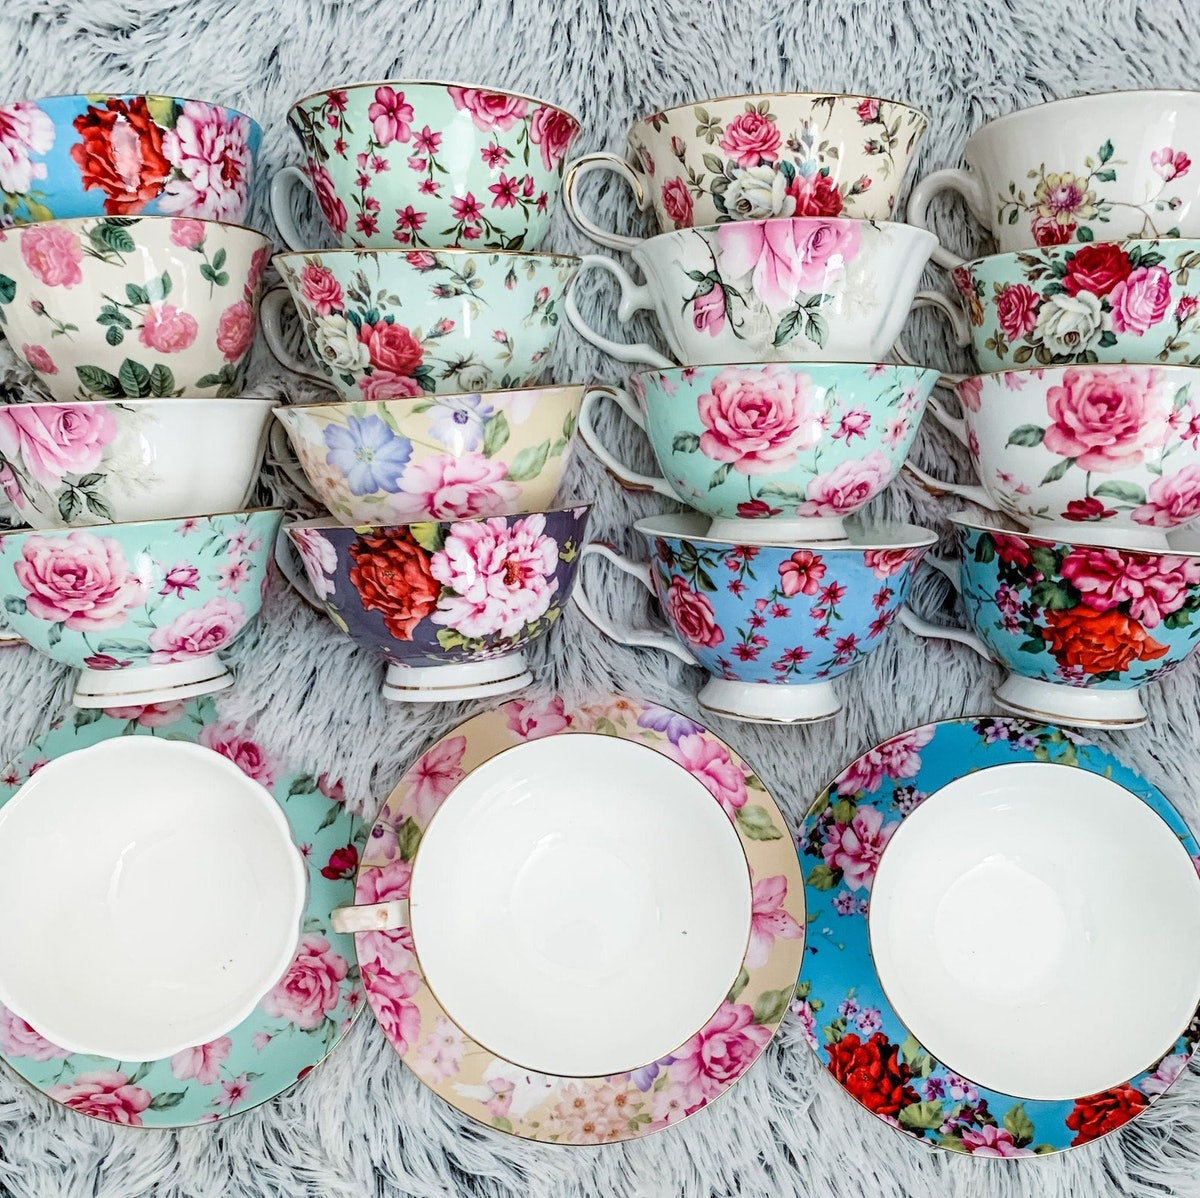 Imperfect Bulk Tea cups & Saucers with Minor Imperfections